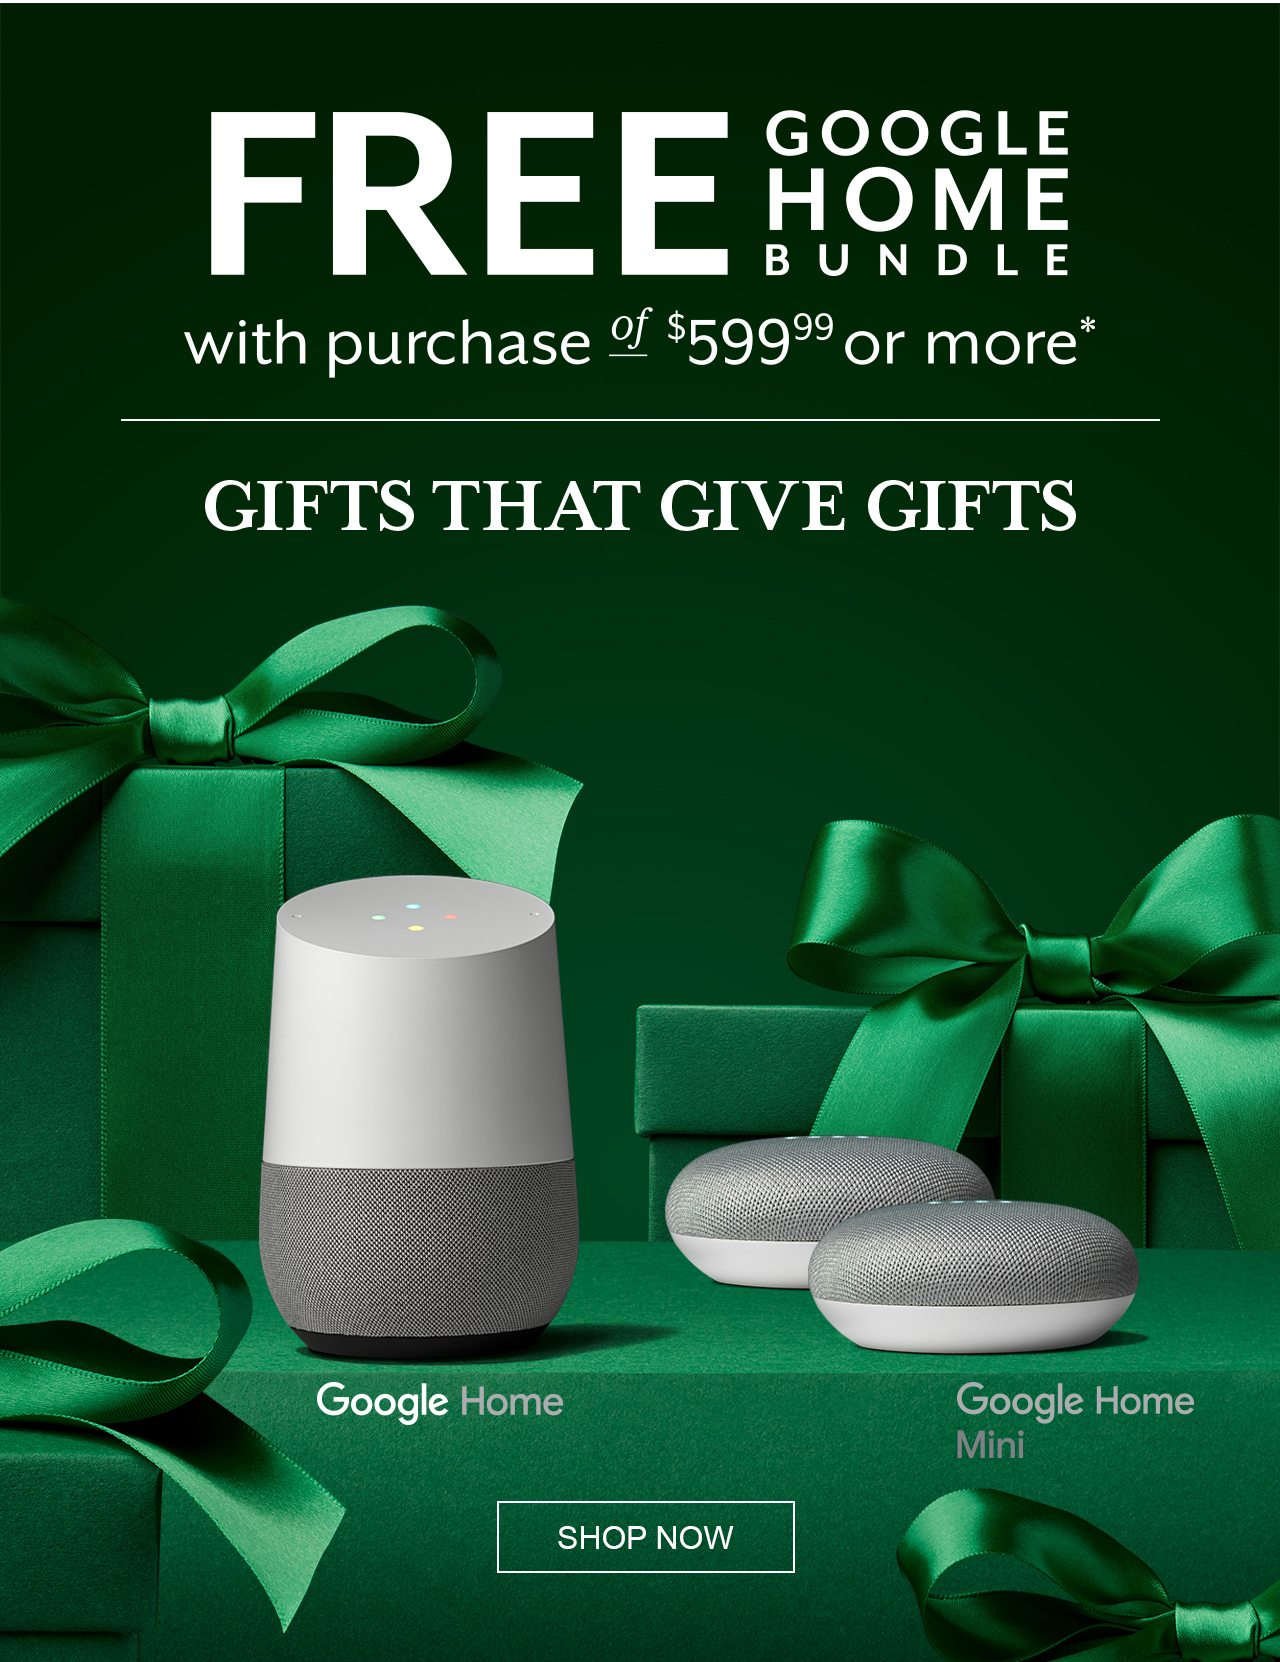 ef0df8463 Okay, Google, show me a great deal! Now through December 24th, you can take  home a Google Home bundle with your purchase of $599.99 or more.